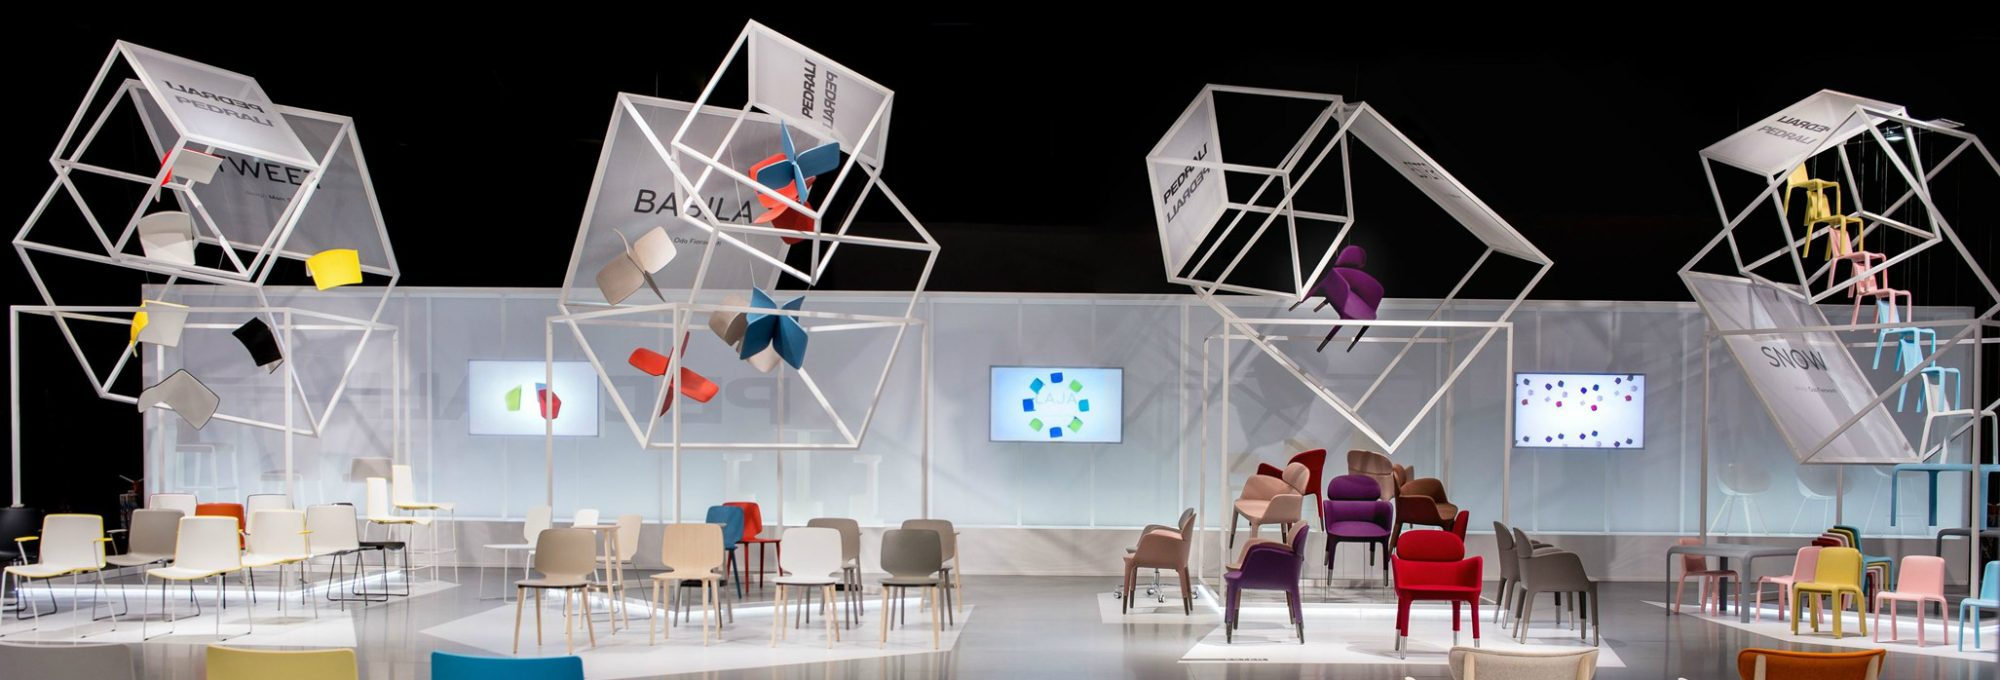 The ultimate guide to the milan design week 2018 daily for Daily design news